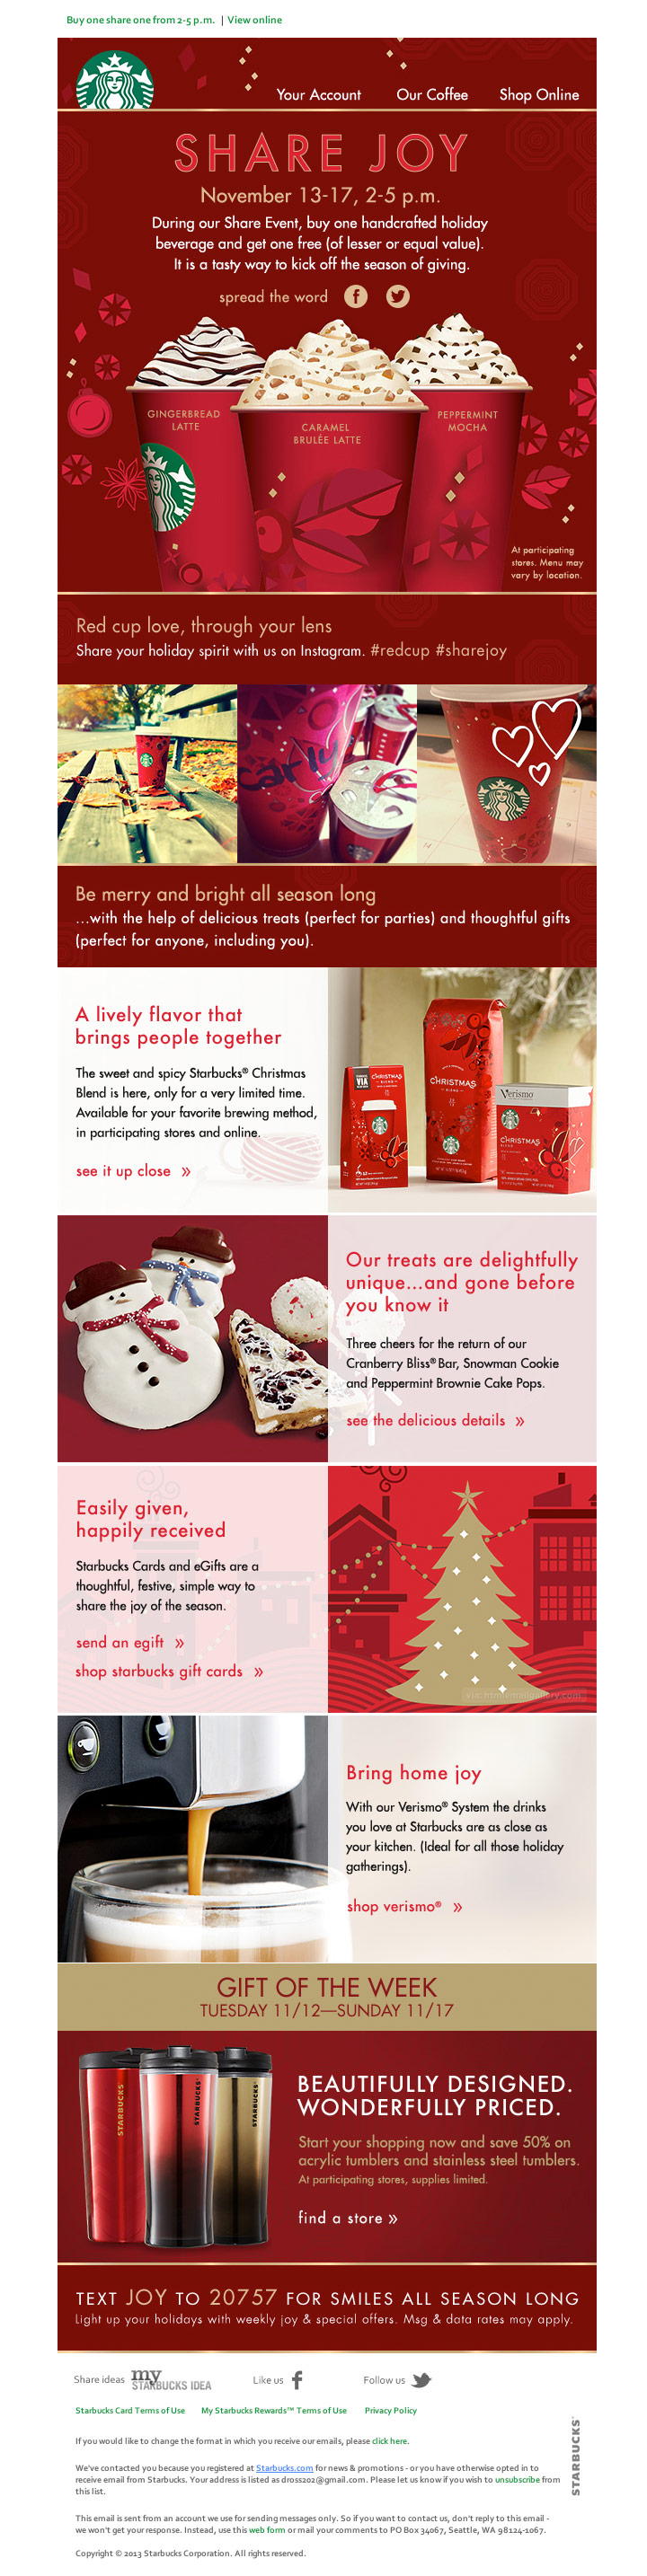 Starbucks Share Joy Holiday email